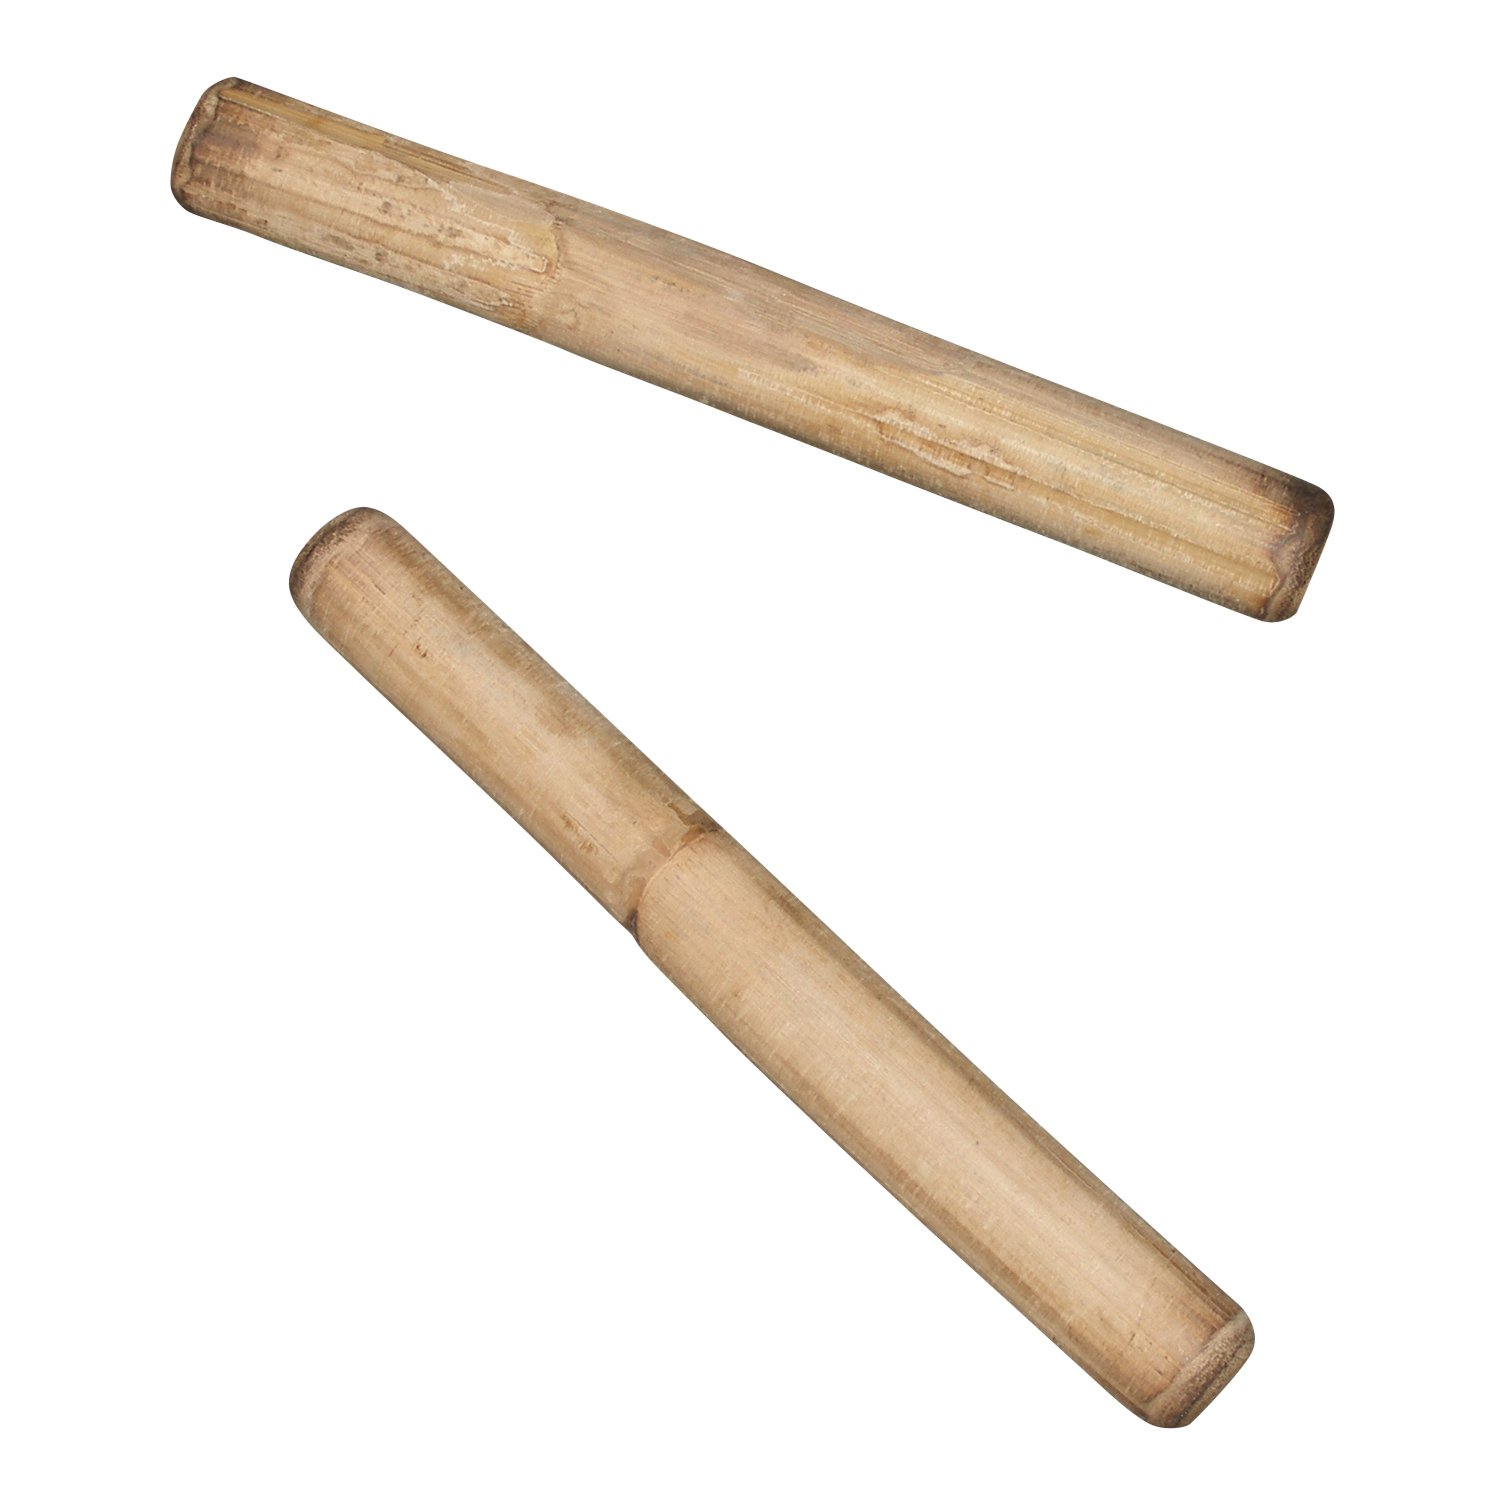 Deluxe Filipino Syatong Chato Game - 2 Rattan Stick Sets: 2pc - 29'' & 2pc - 8'' larong, pinoy by Deluxe Shatong (Image #3)